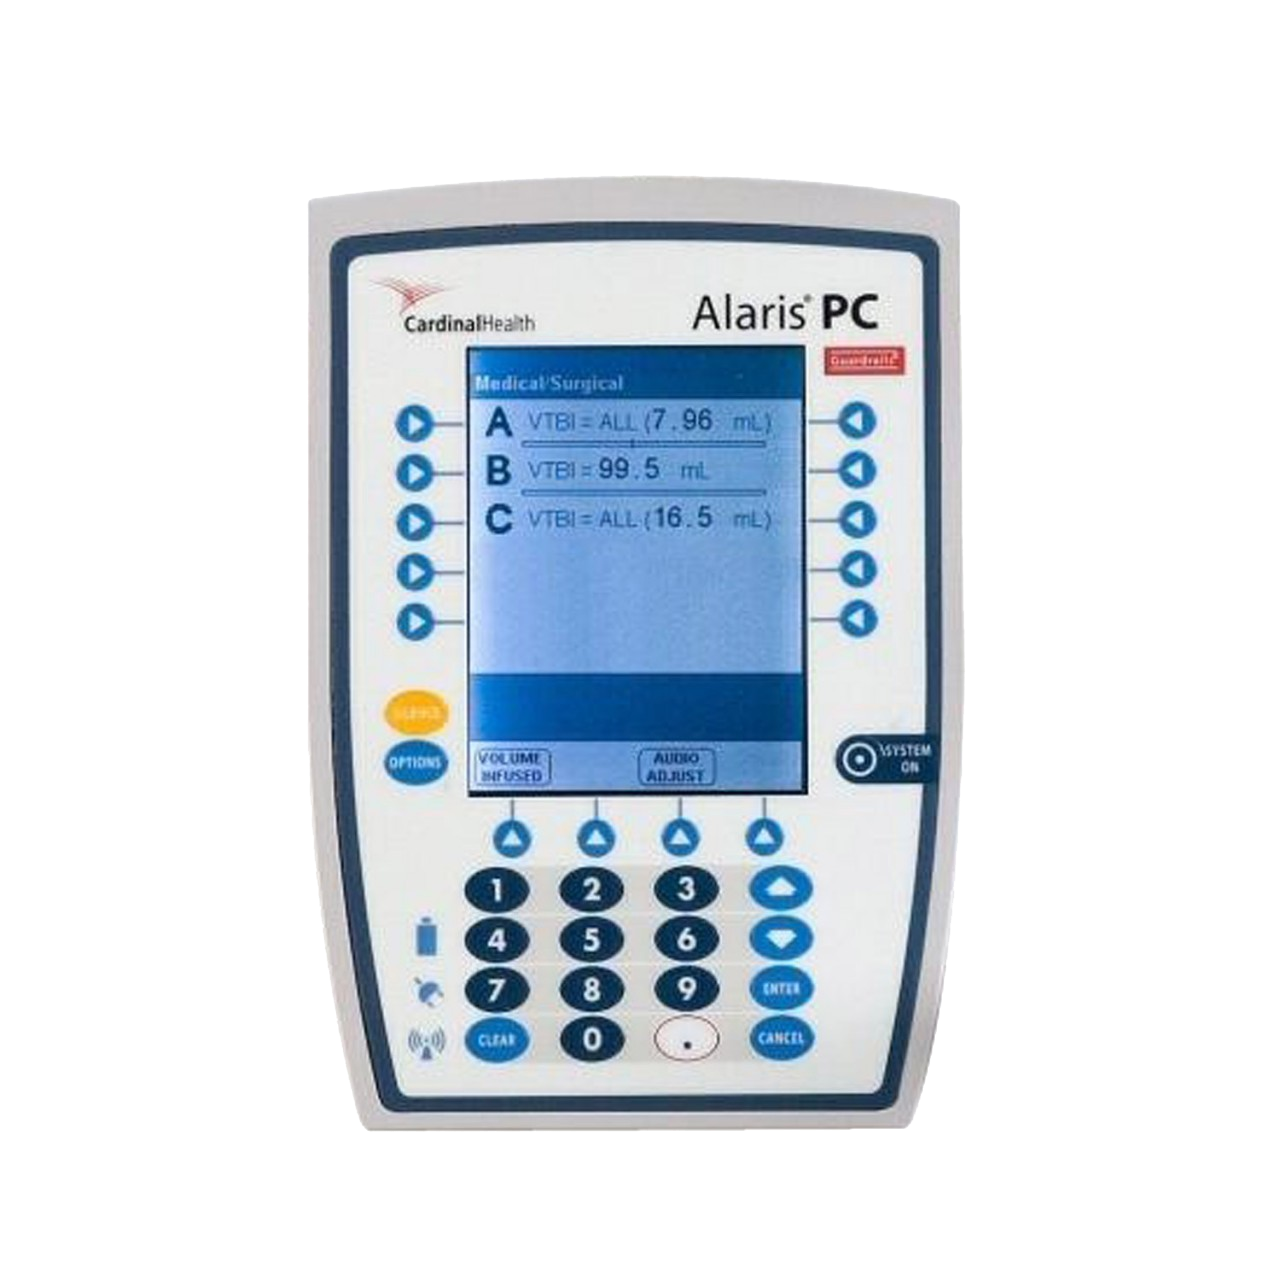 Alaris Carefusion 8015 PCU Infusion Pumps Image